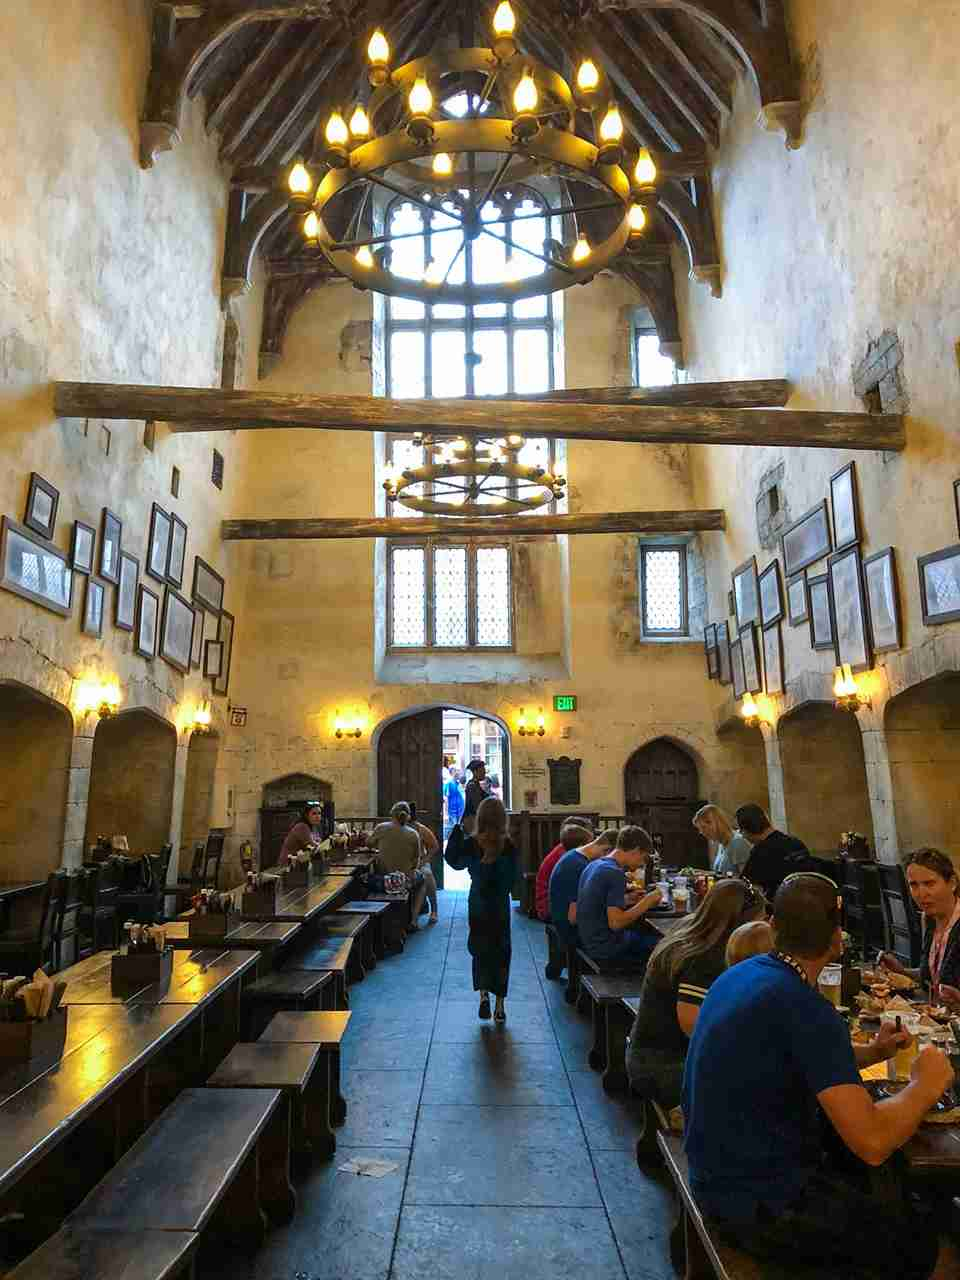 Sorry Royal Pacific, we ate with Harry Potter